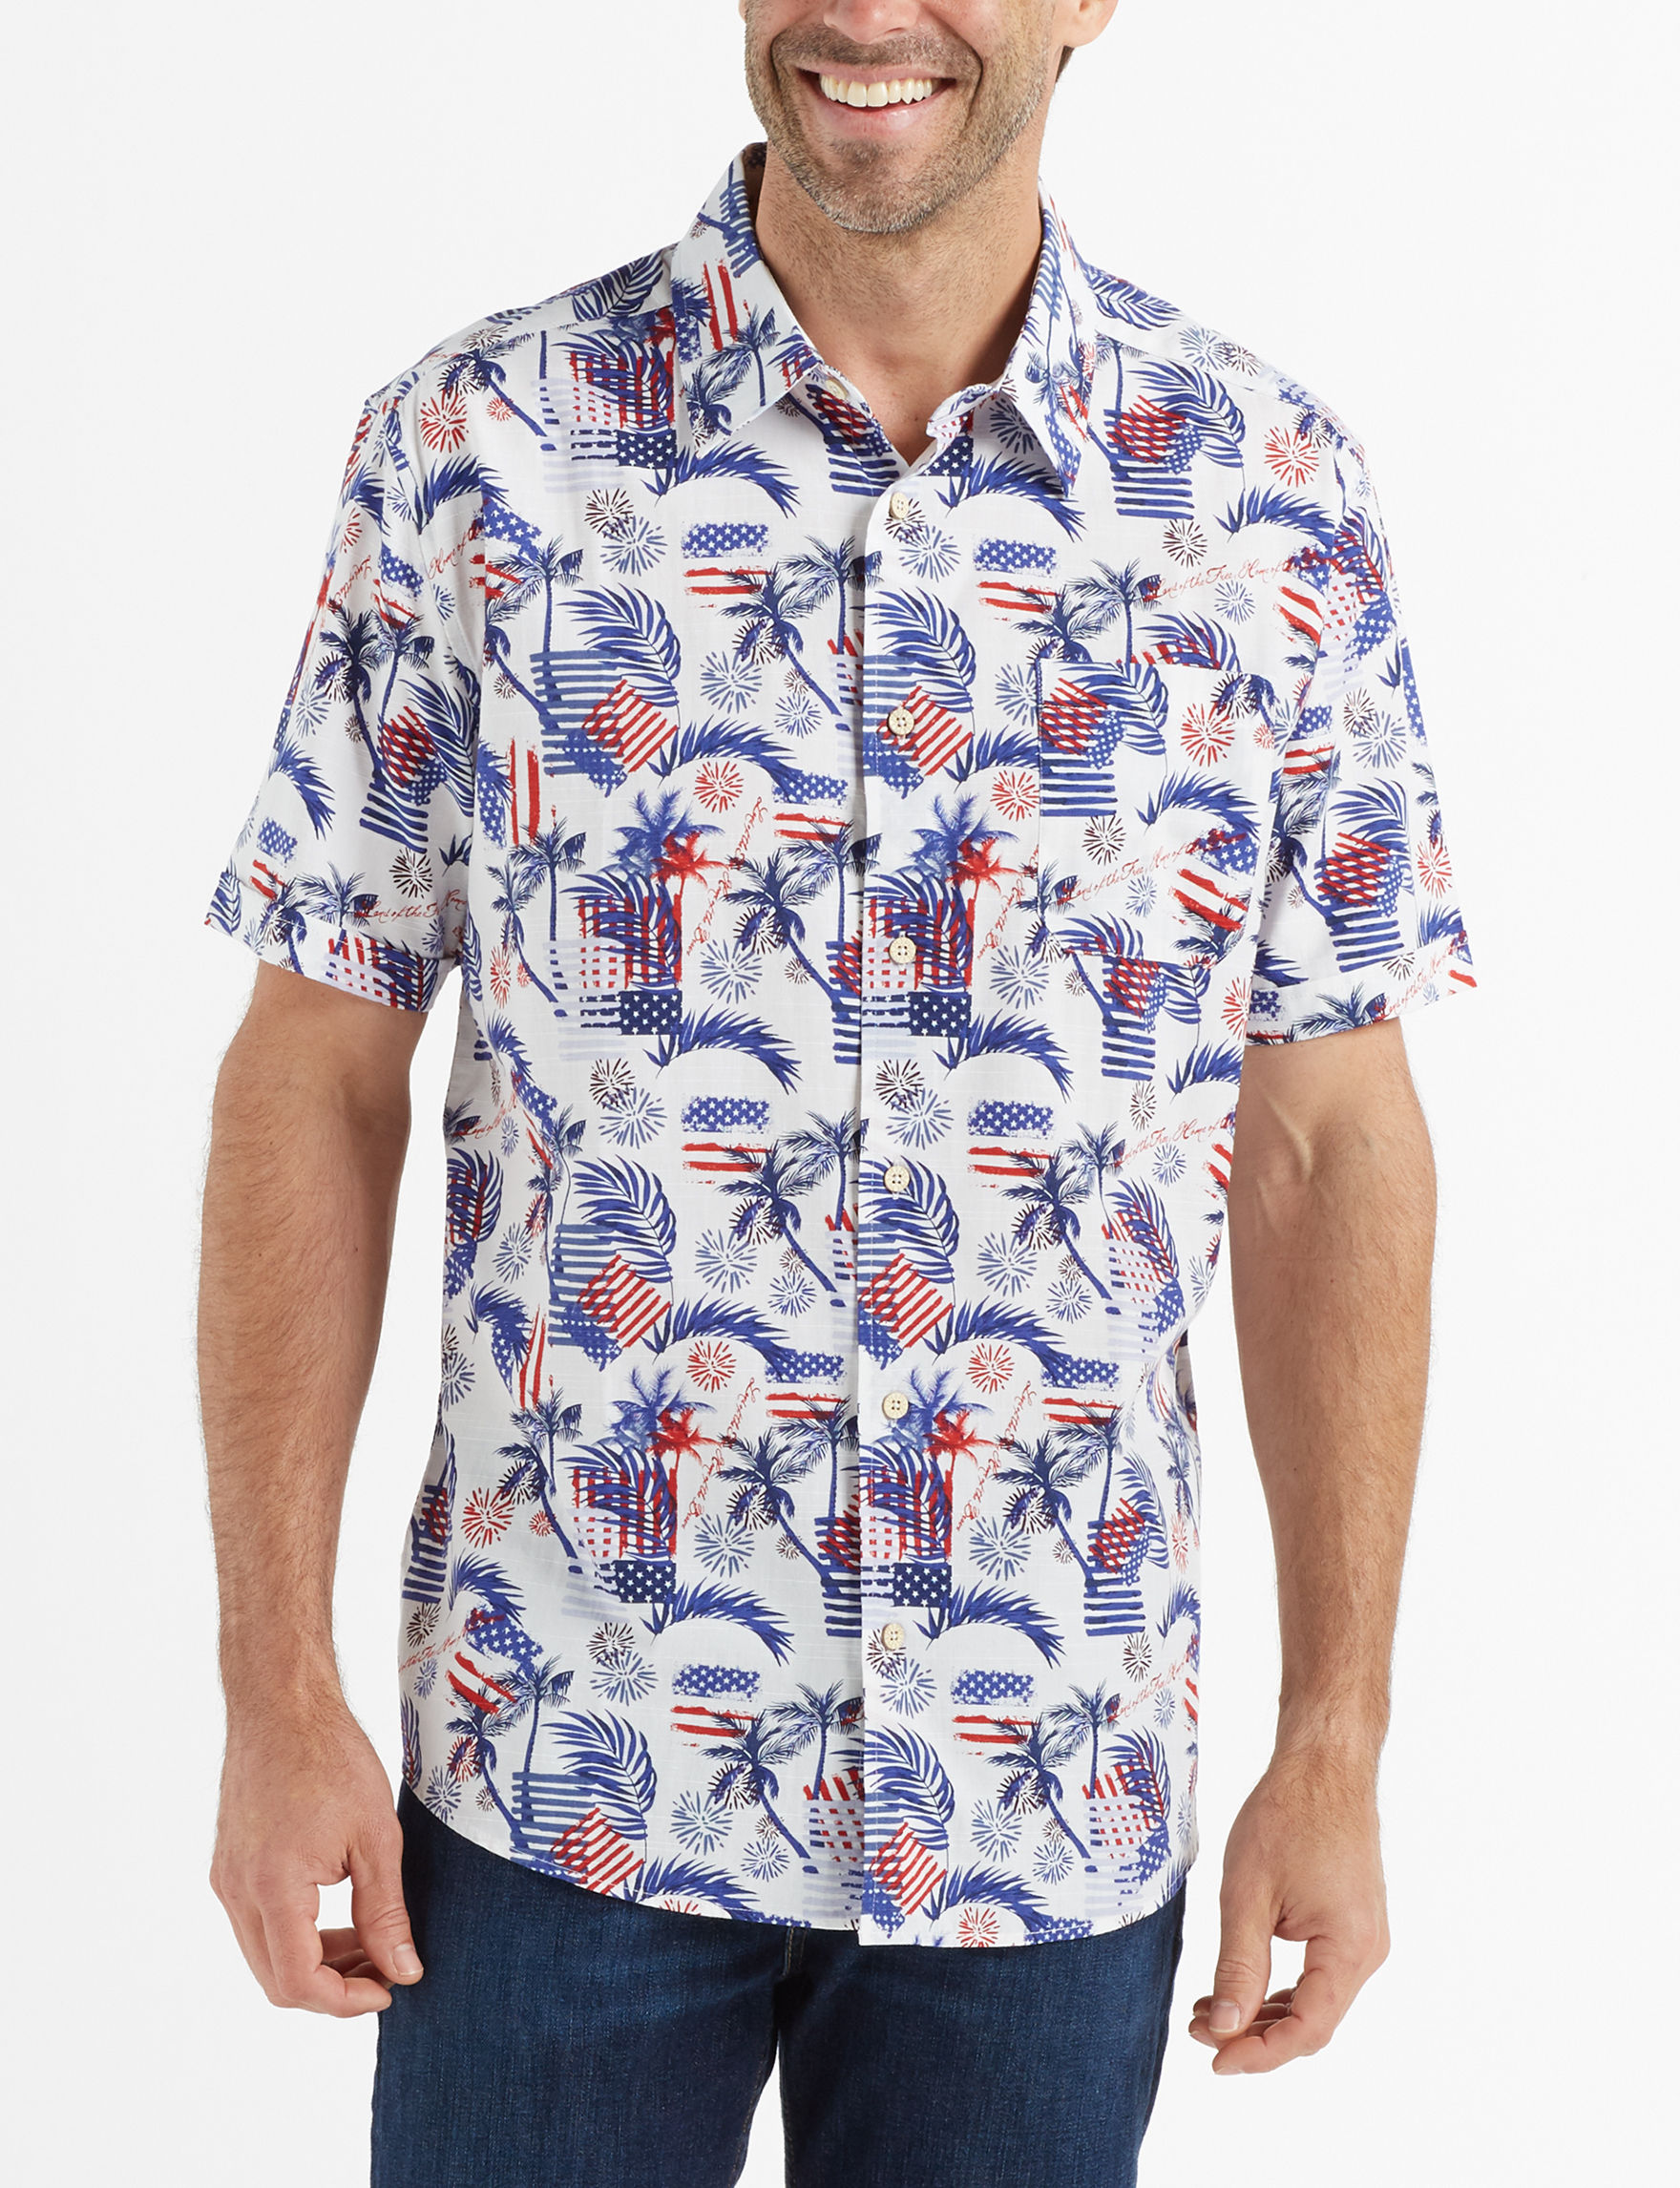 Tricots St. Raphael White / Multi Casual Button Down Shirts